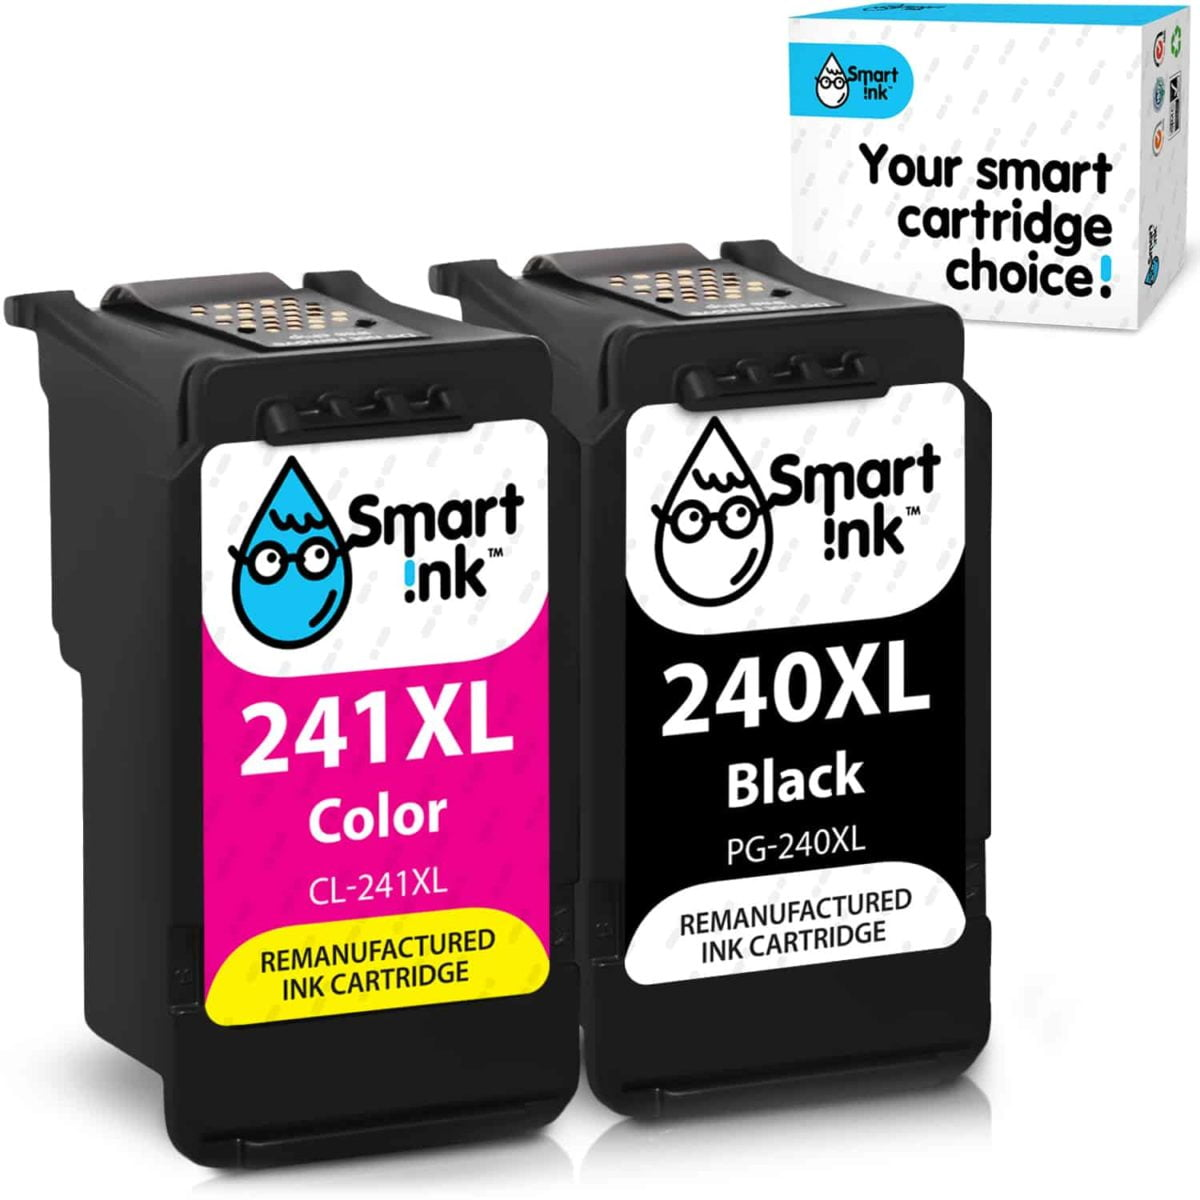 240XL, 241XL. Smart Ink Cartridge Replacement for Canon 240 XL, 241 XL (2 pack), Remanufactured